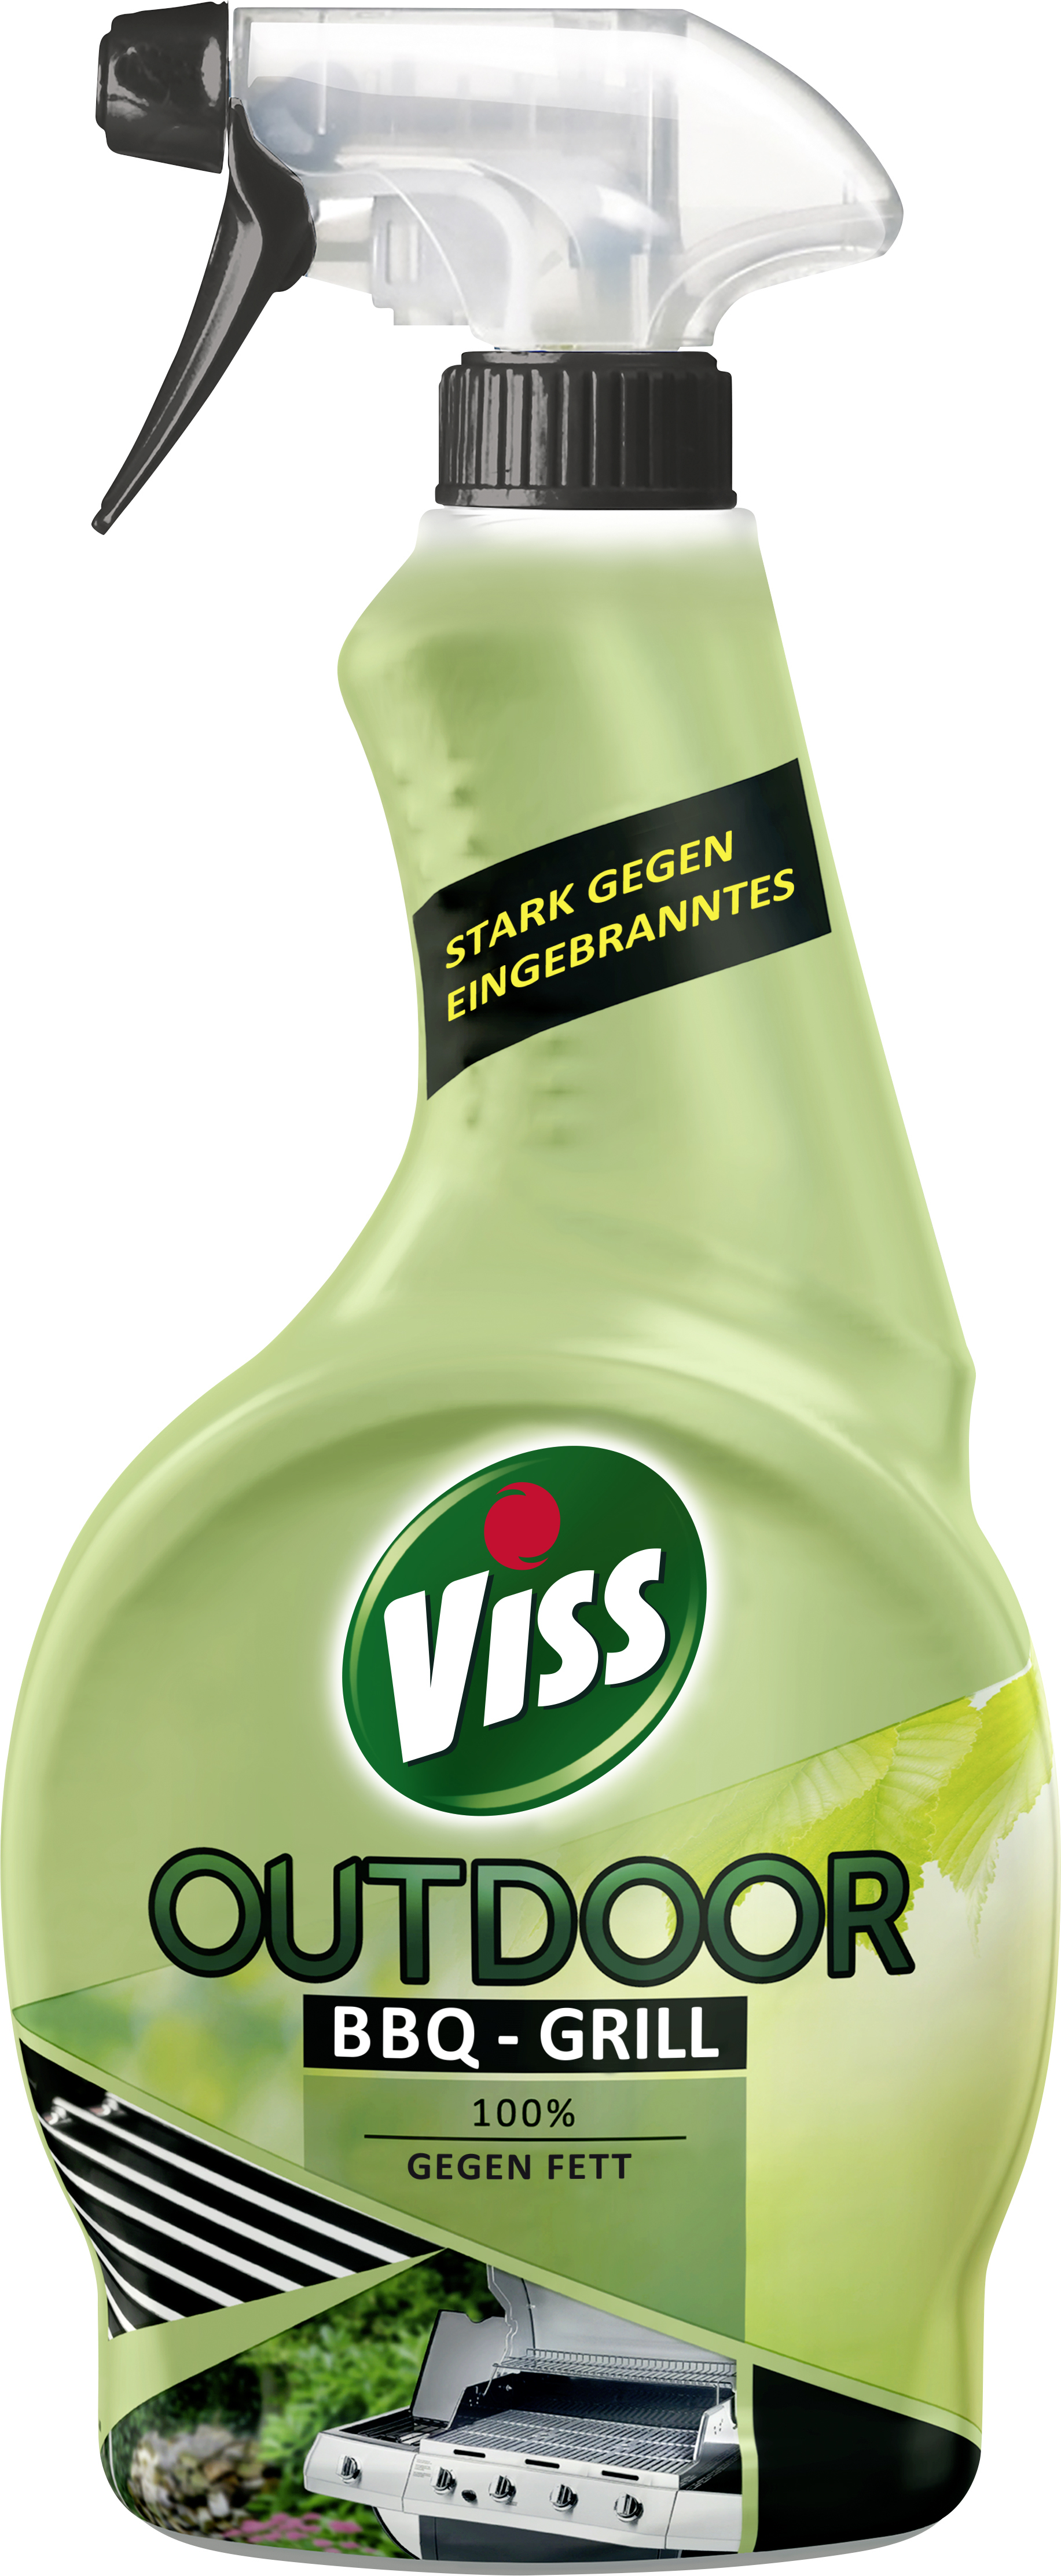 VISS Outdoor BBQ Spray 12x450ml FL